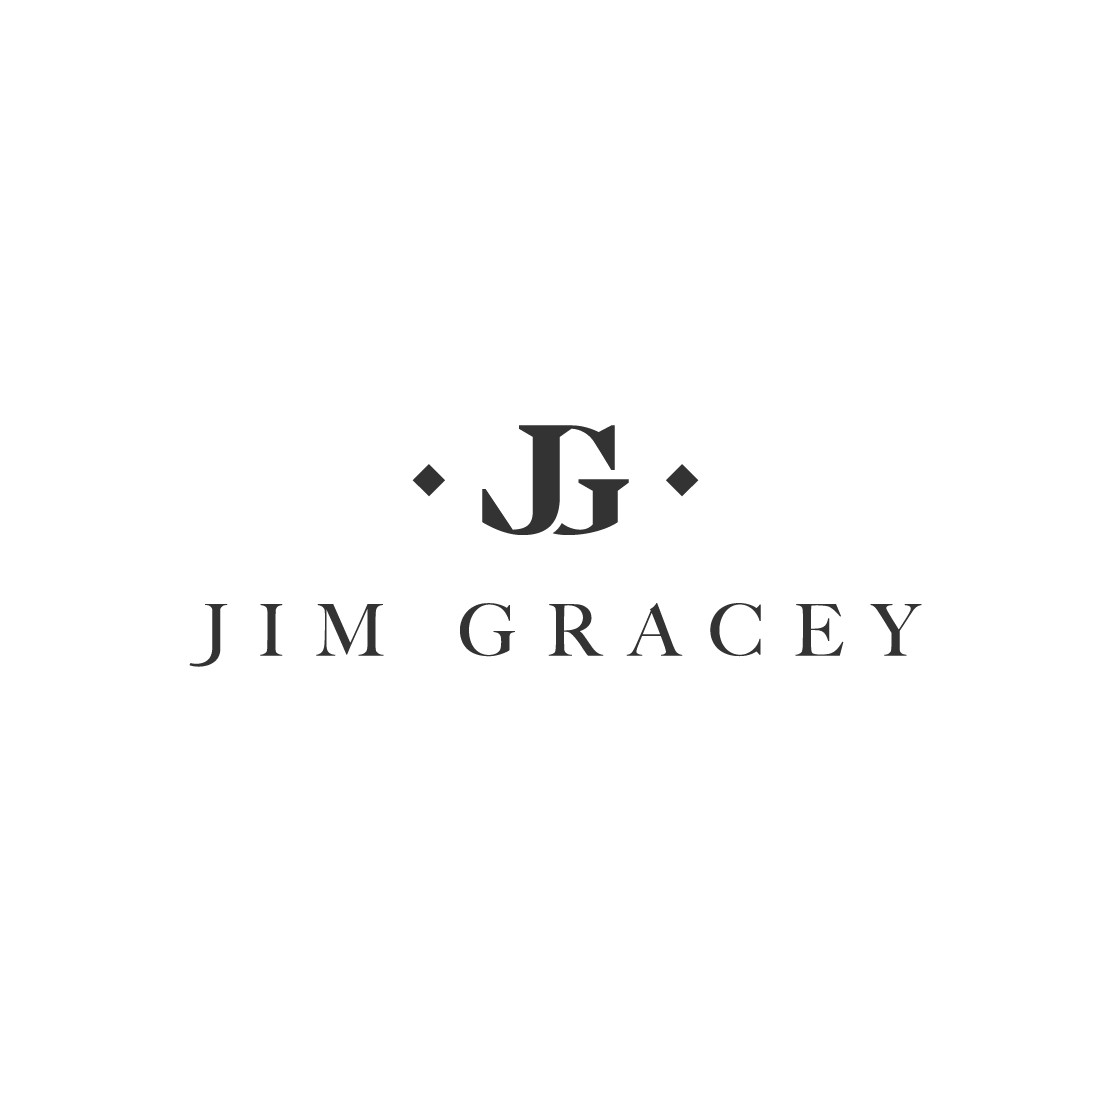 Classically stylish and simply elegant logo for clothing label.